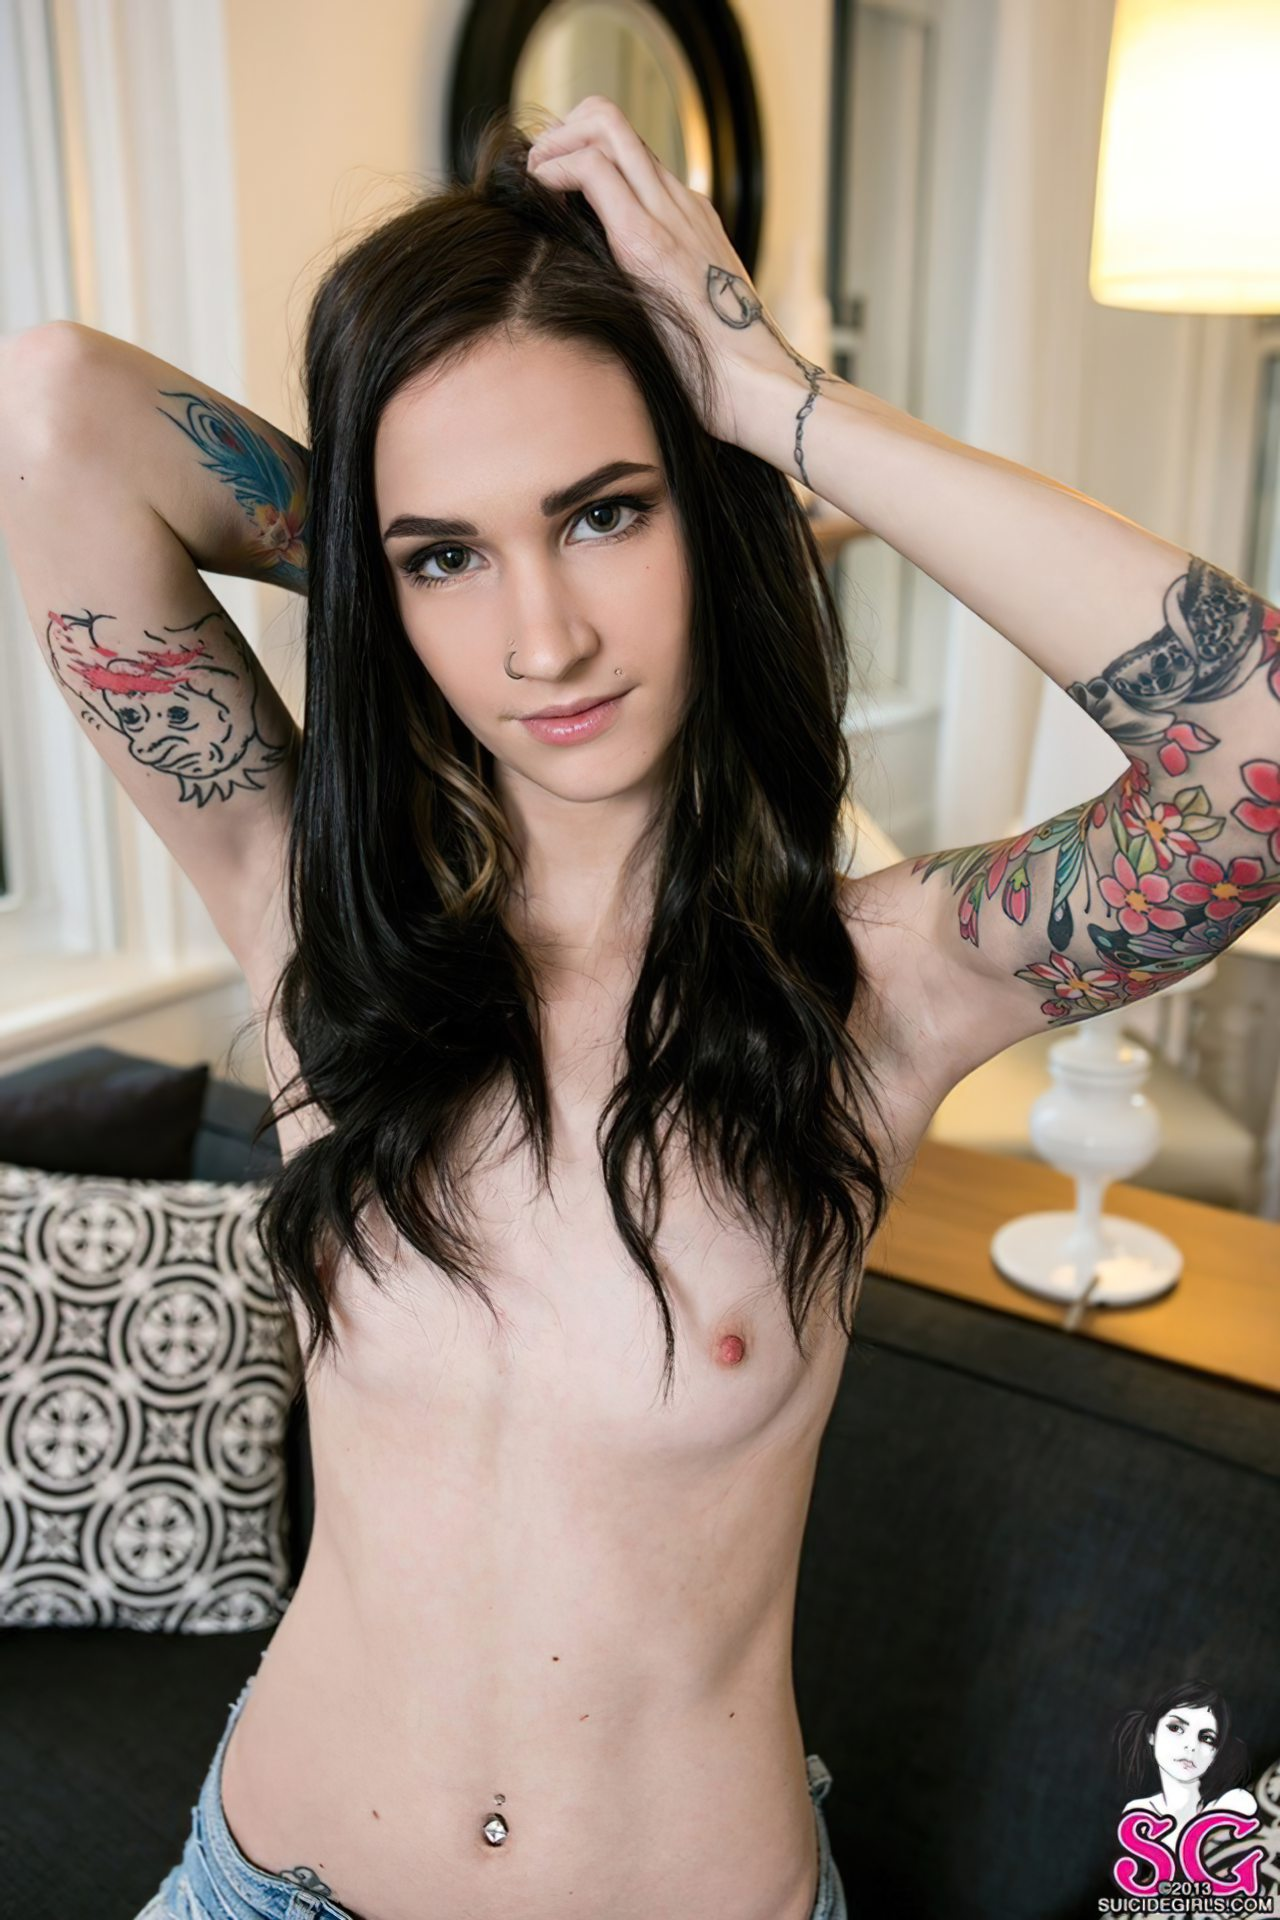 Luxette - Suicide Girl (1)